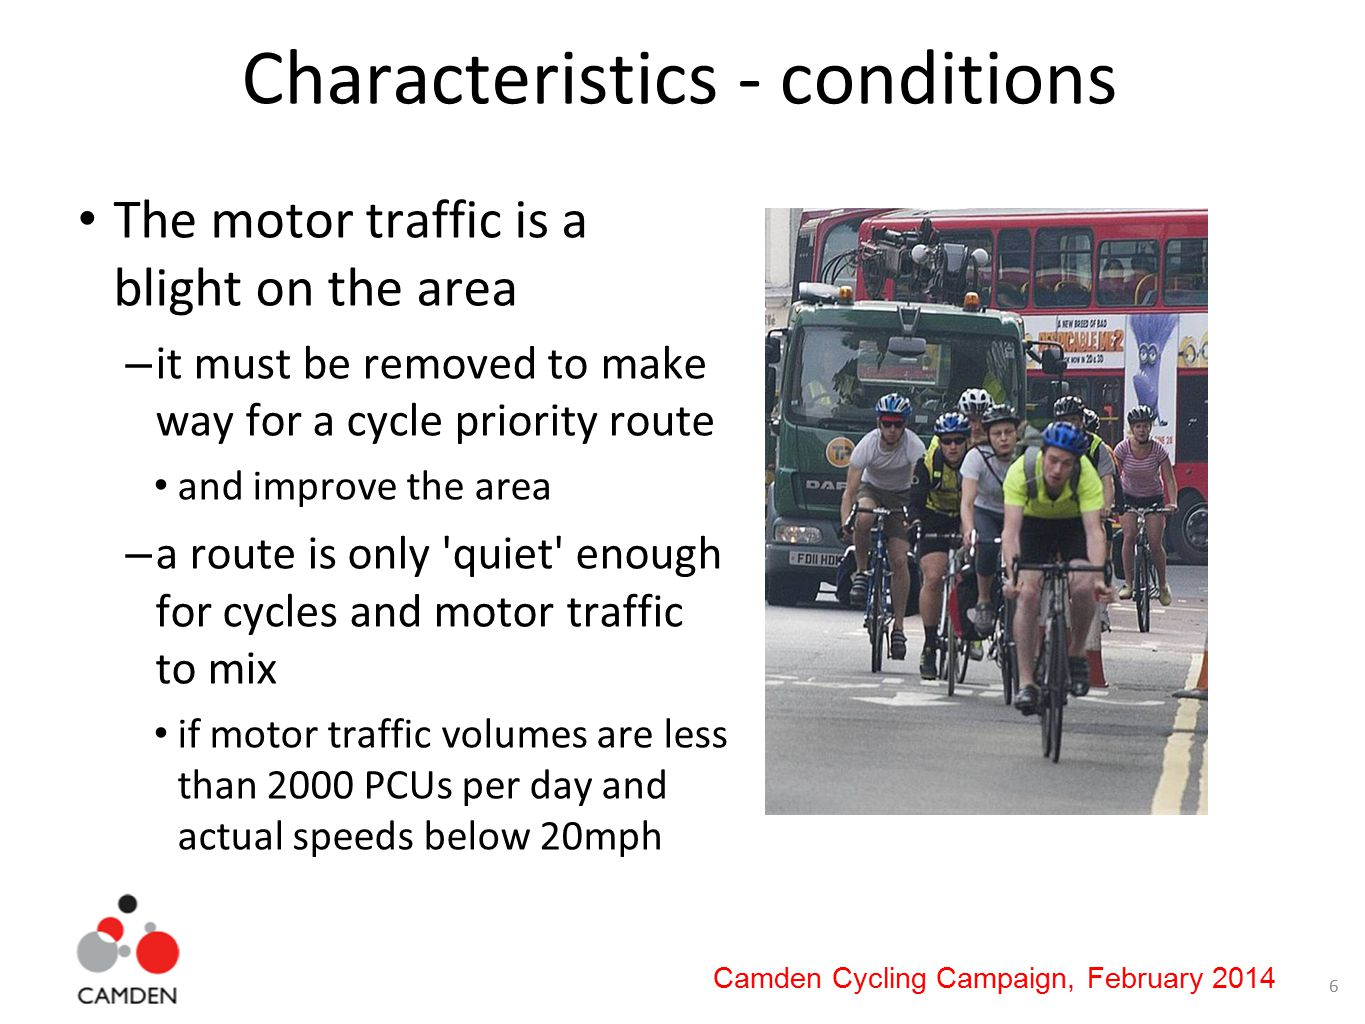 7 Camden Cycling Campaign, February 2014 Characteristics - motor flows Motor flow >> 2000 PCUs per day – it must be reduced below that level for sharing the road Buses alone: – Theobalds Road buses are too numerous for sharing the road – Bloomsbury Way has even more routes than Theobalds Road the excess EB routes need to be relocated onto the roads where the WB ones run From April 2013 cycling census